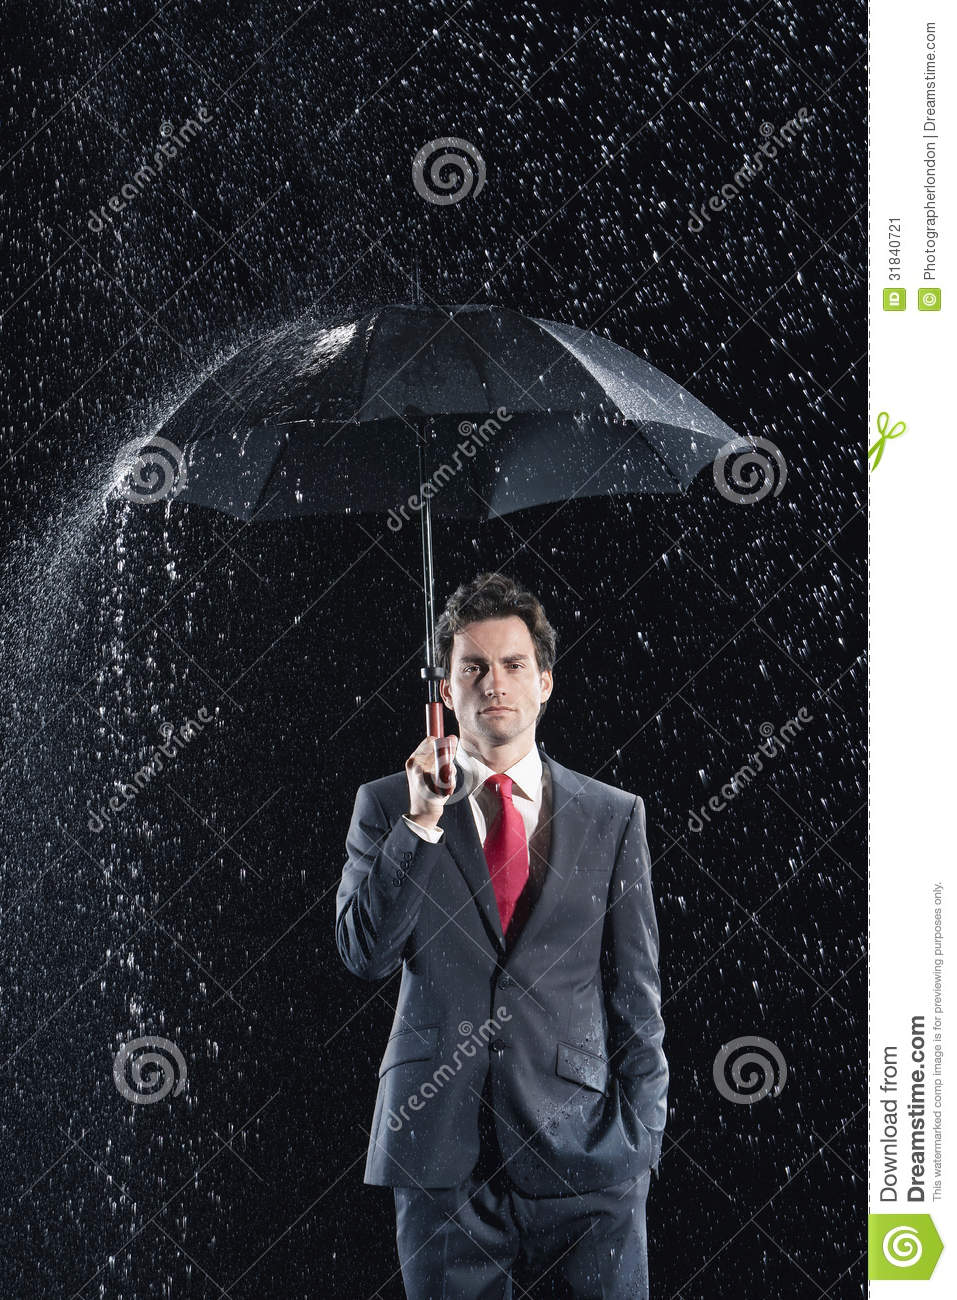 Stock Image Young Businessman Under Umbrella Rain Portrait Standing Against Black Background Image31840721 in addition Cheap House Decorating Items House Plans And Ideas Pinterest With Pic Of Minimalist Diy Decorations For Your Bedroom together with Bella Vista On Lake Min onka also Amr Ihomes Yamuna Expressway Greater Noida 421 likewise Club House. on house floor plans with swimming pool